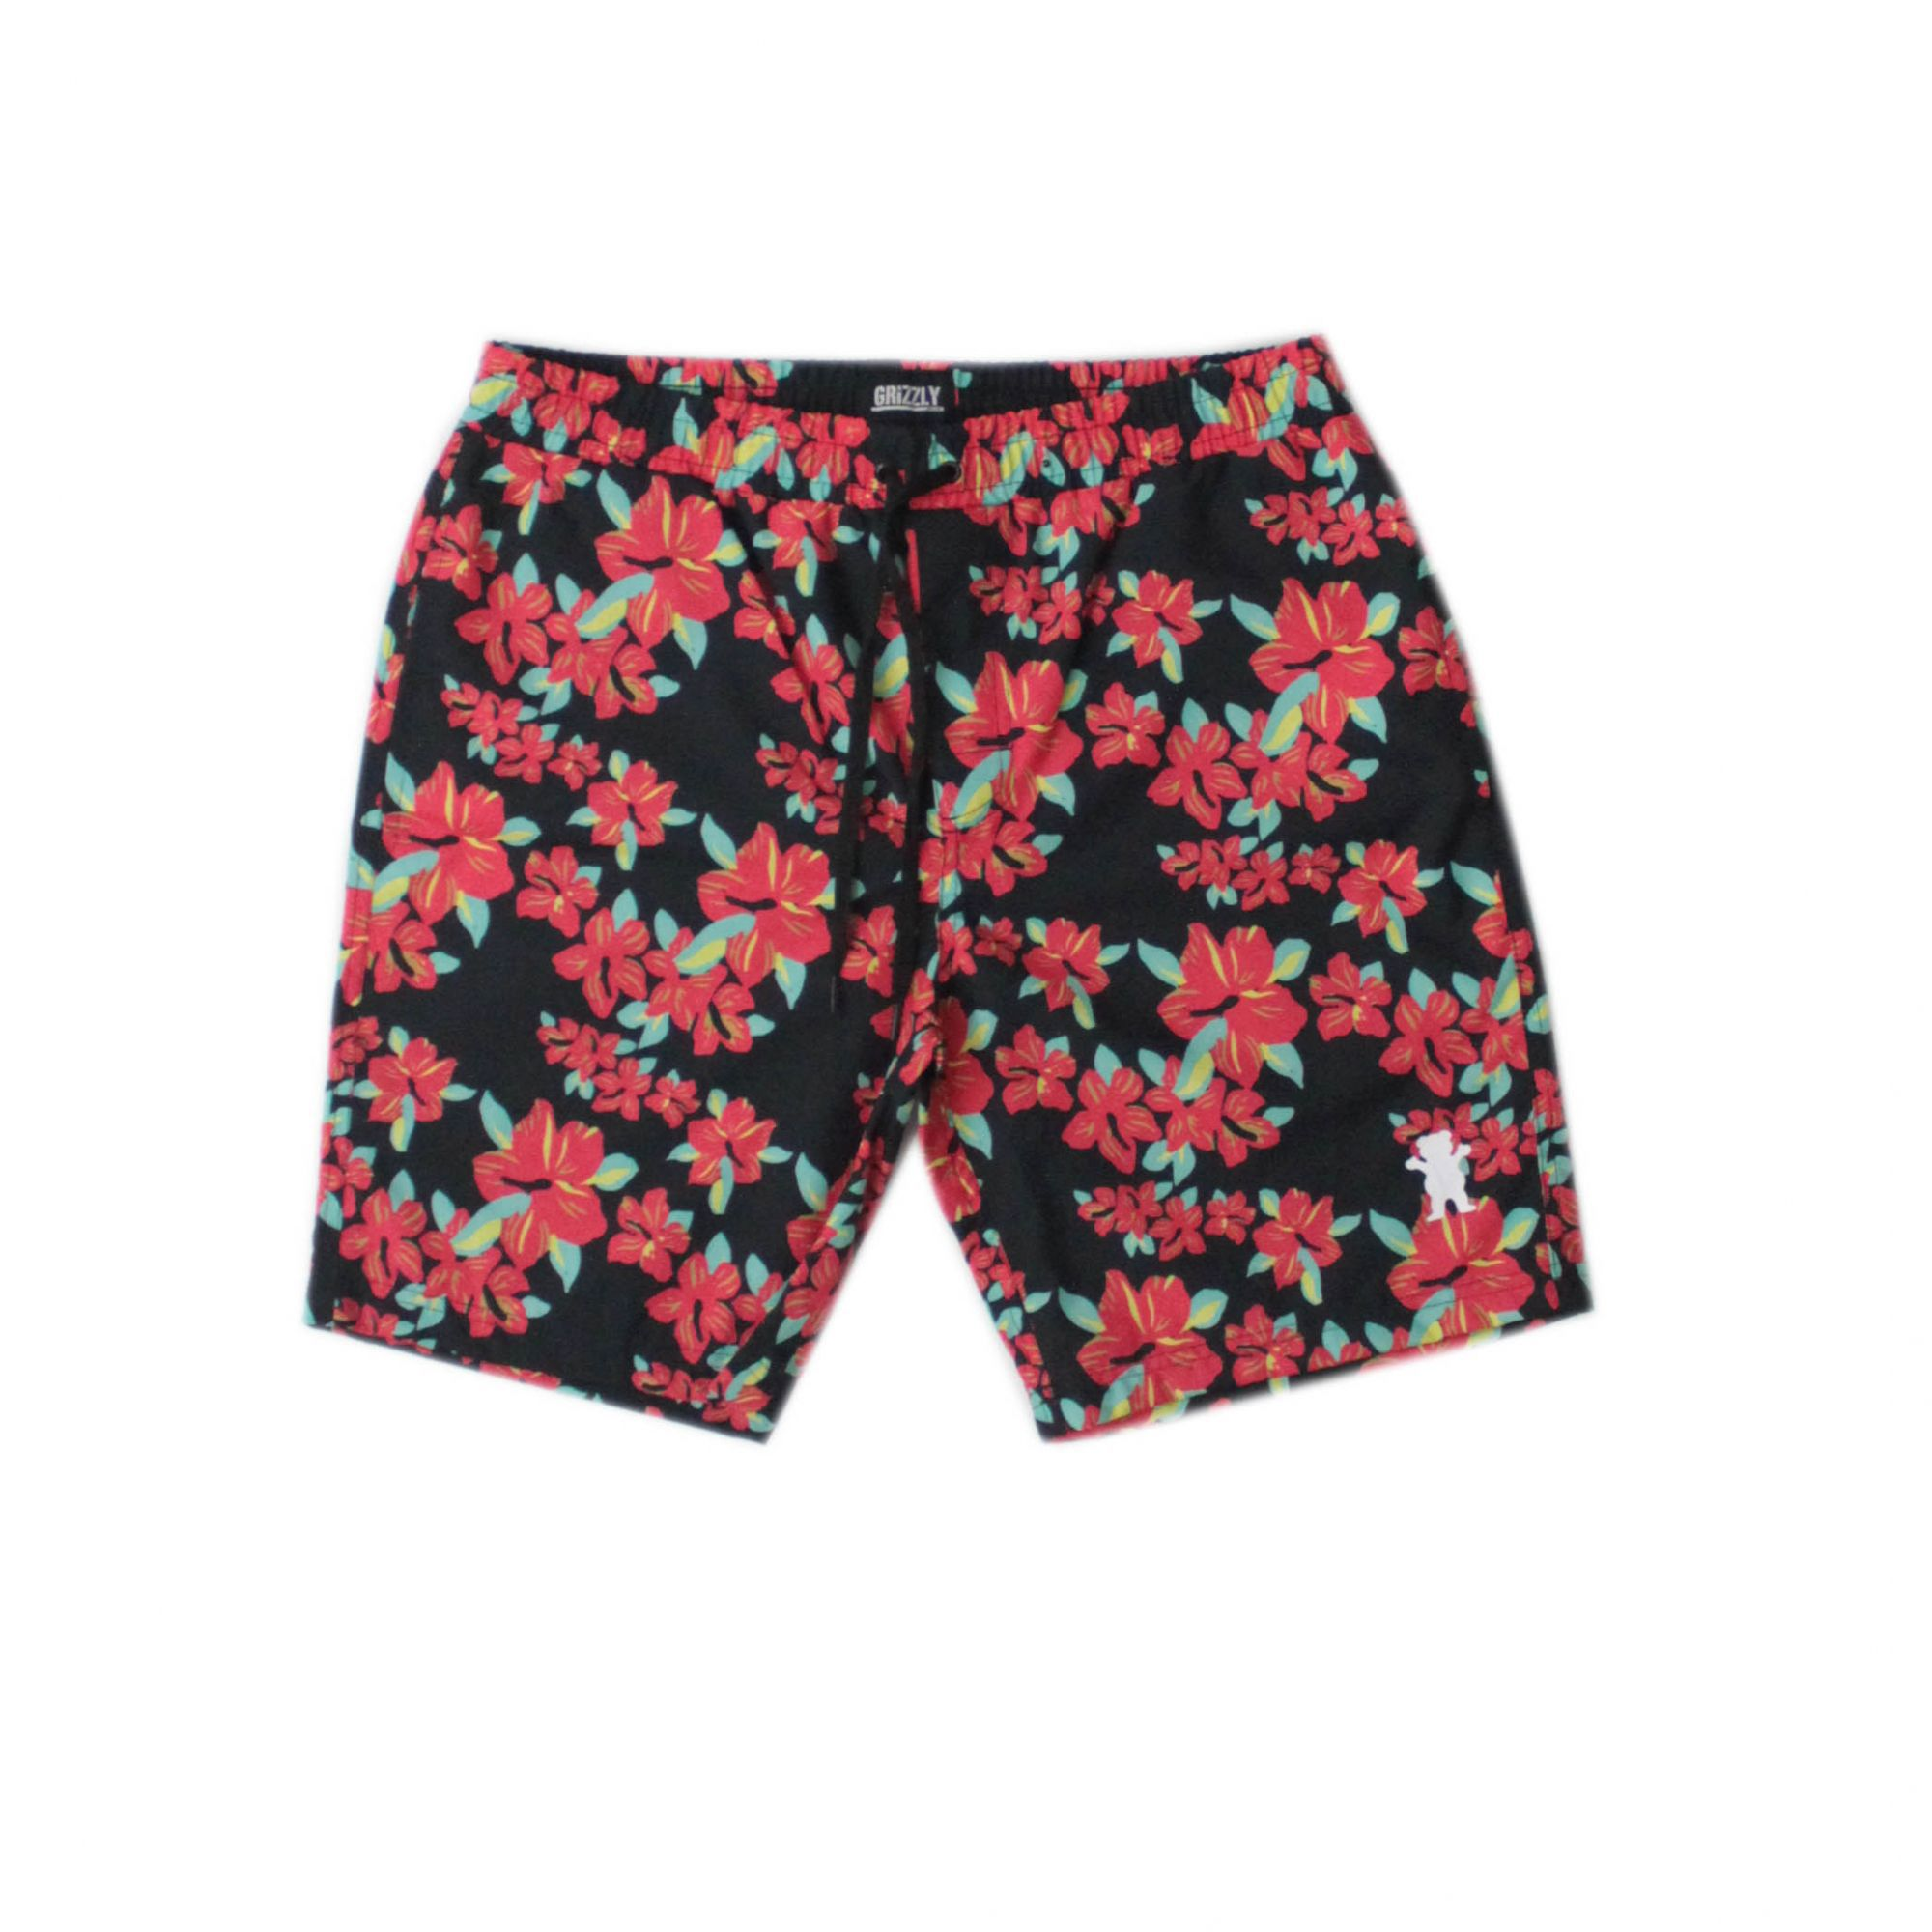 Bermuda Short Grizzly Hibisco Floral Preto